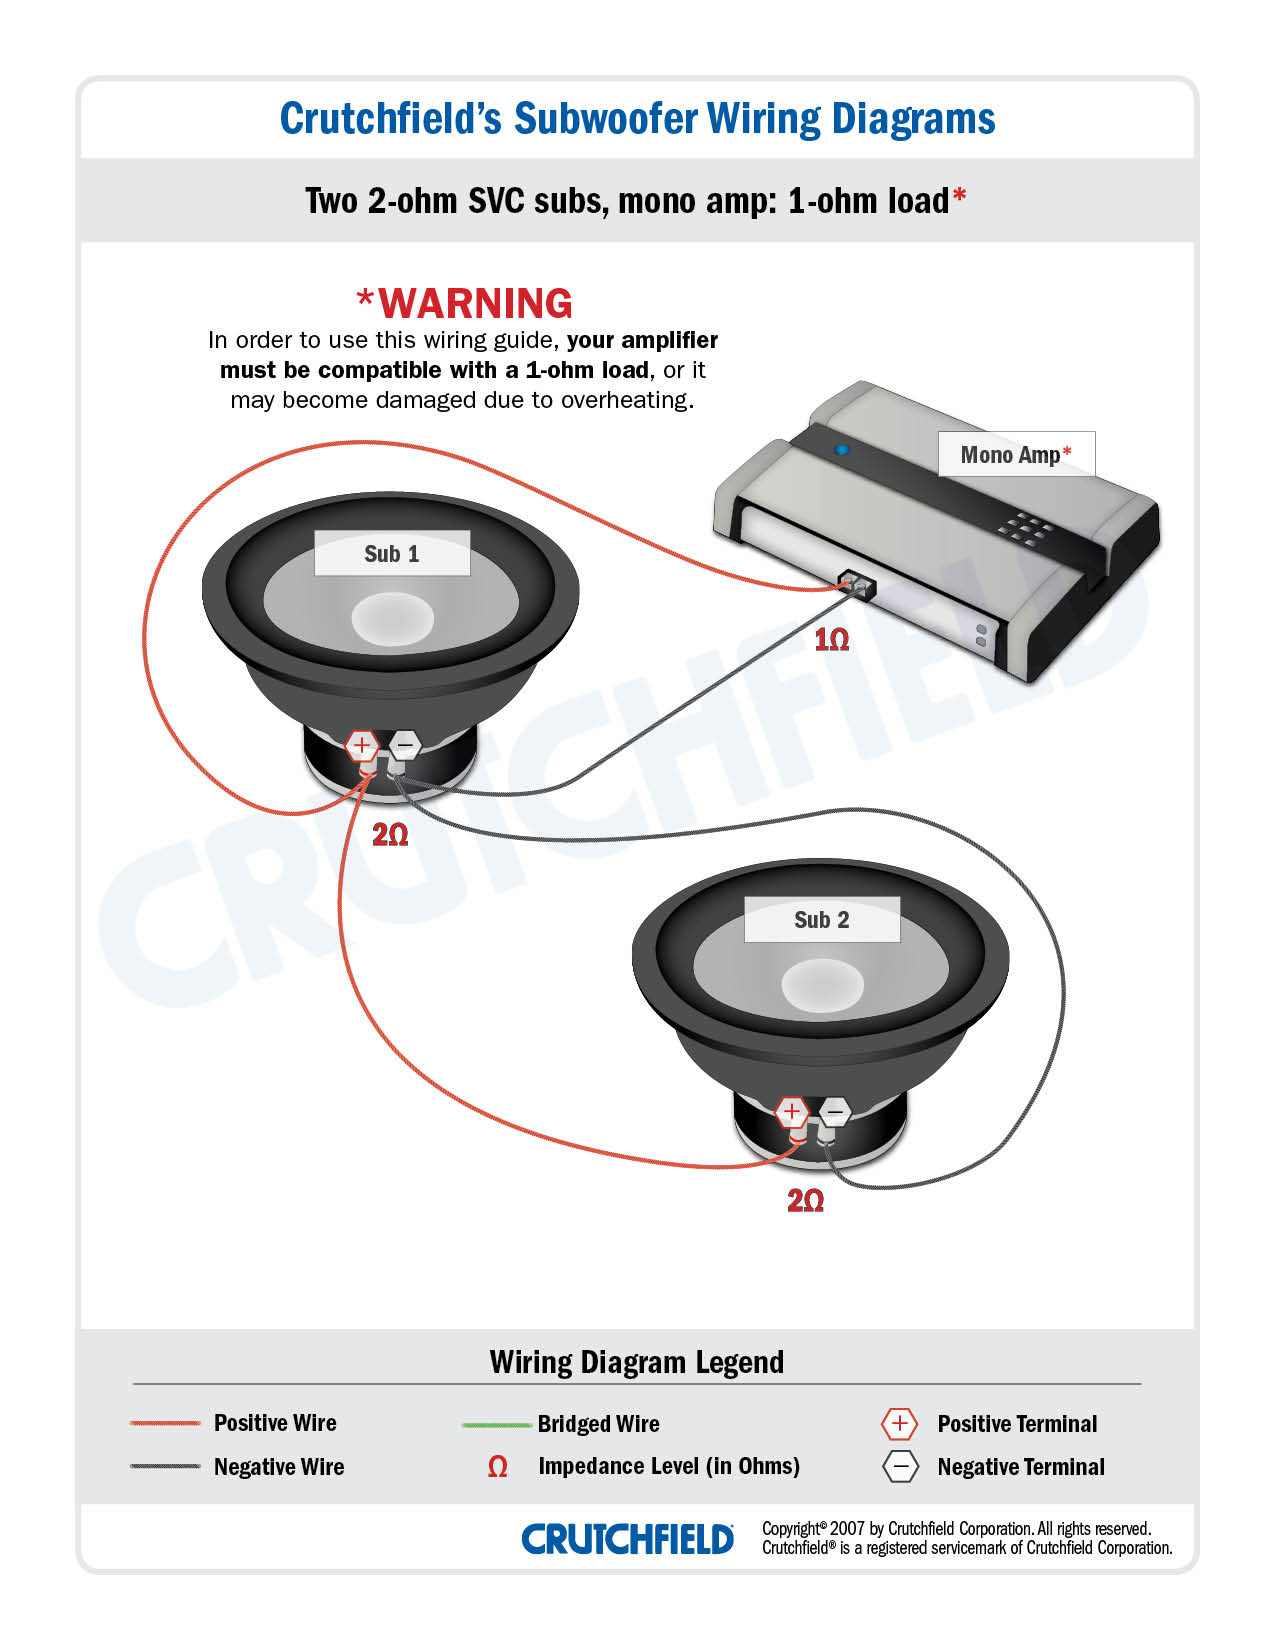 subwoofer wiring diagrams \u2014 how to wire your subs Logitech Subwoofer and Speaker Circuit Board Wiring Diagram however, the fact your amp cuts in and out tells me that either it really can\u0027t handle a 1 ohm load, or it\u0027s defective